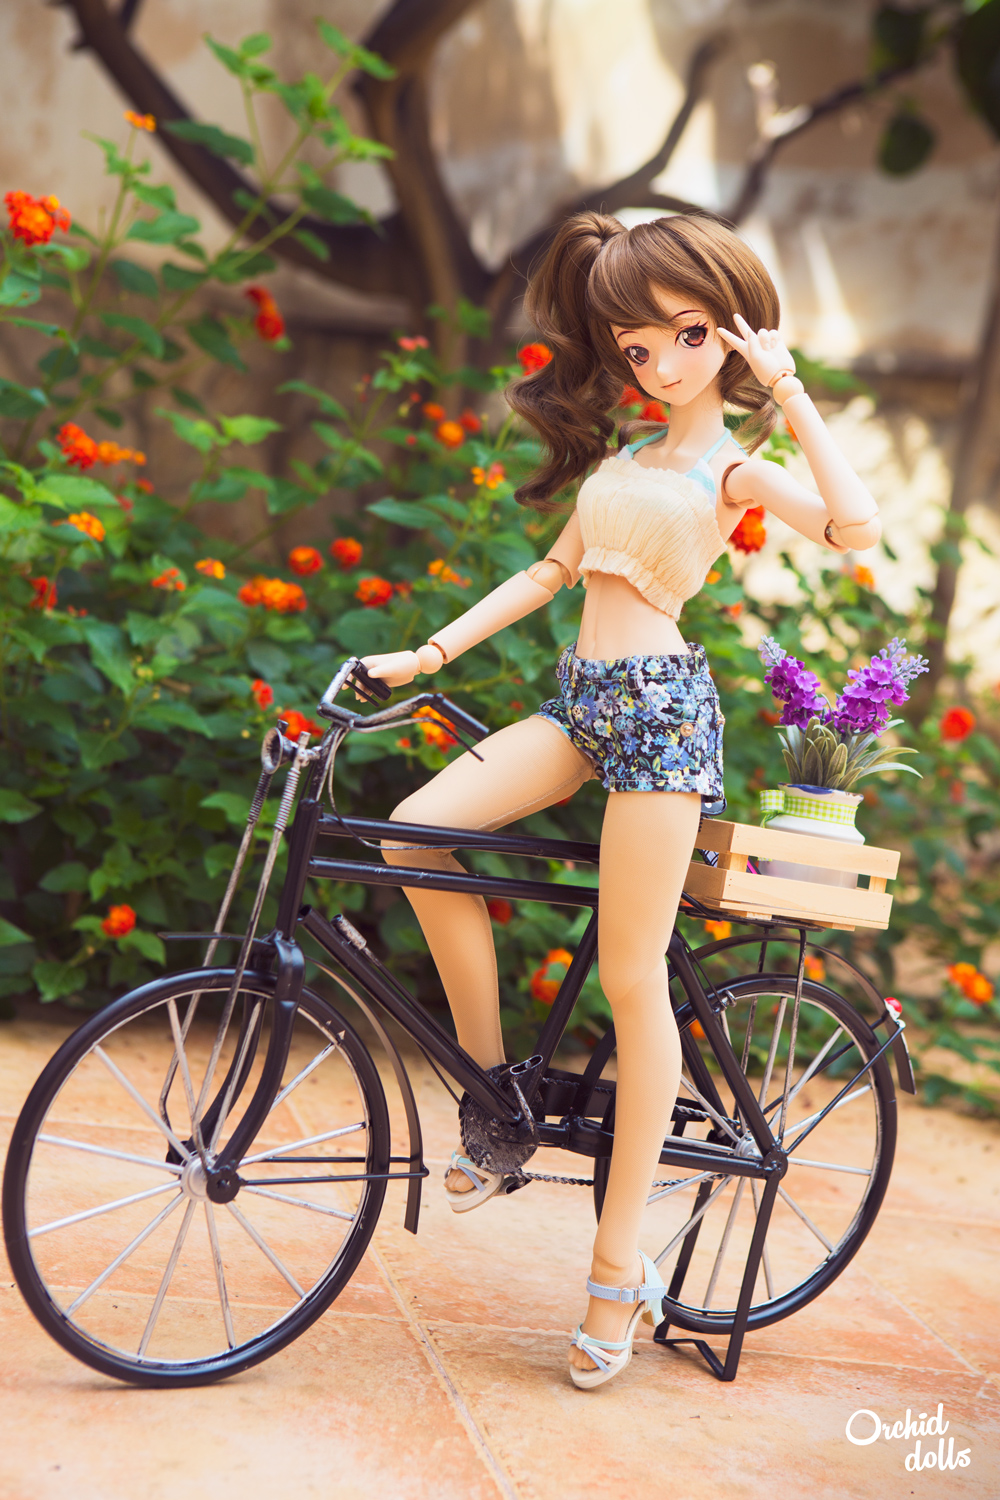 custom Dollfie Dream Kanna con bicicleta